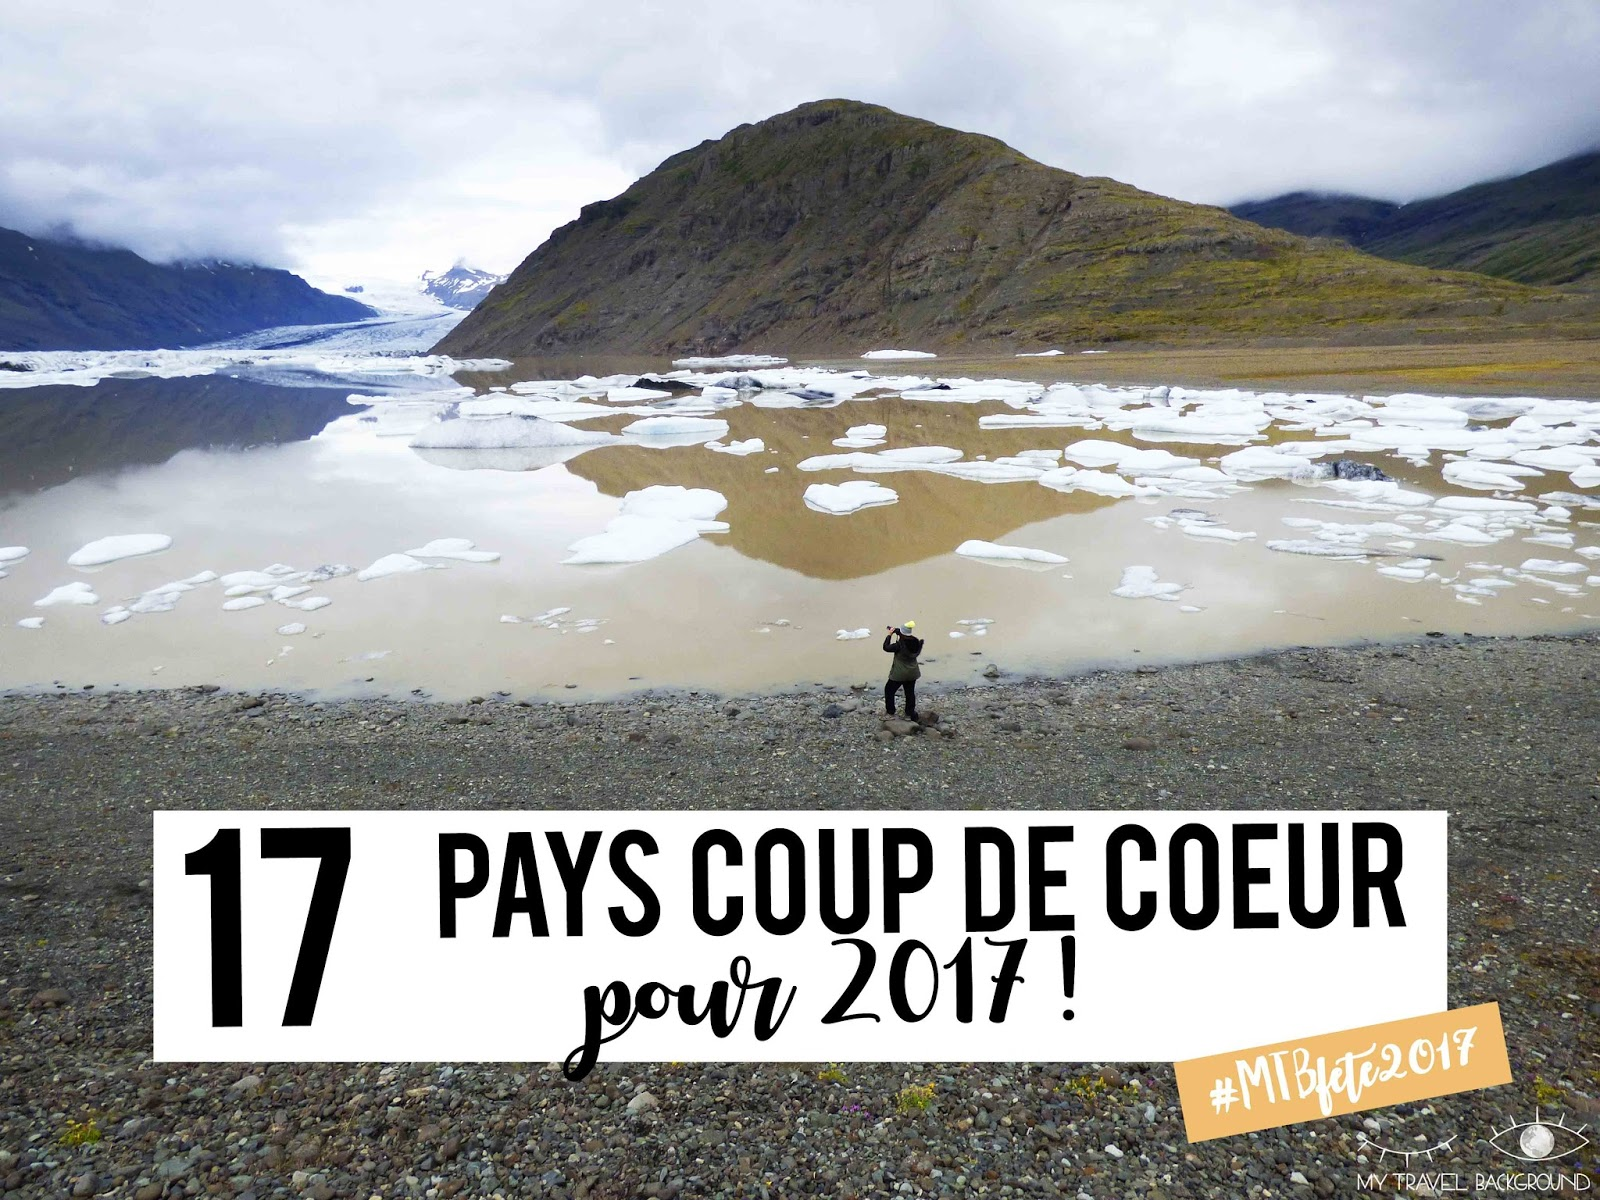 My Travel Background : 17 pays coup de coeur pour 2017